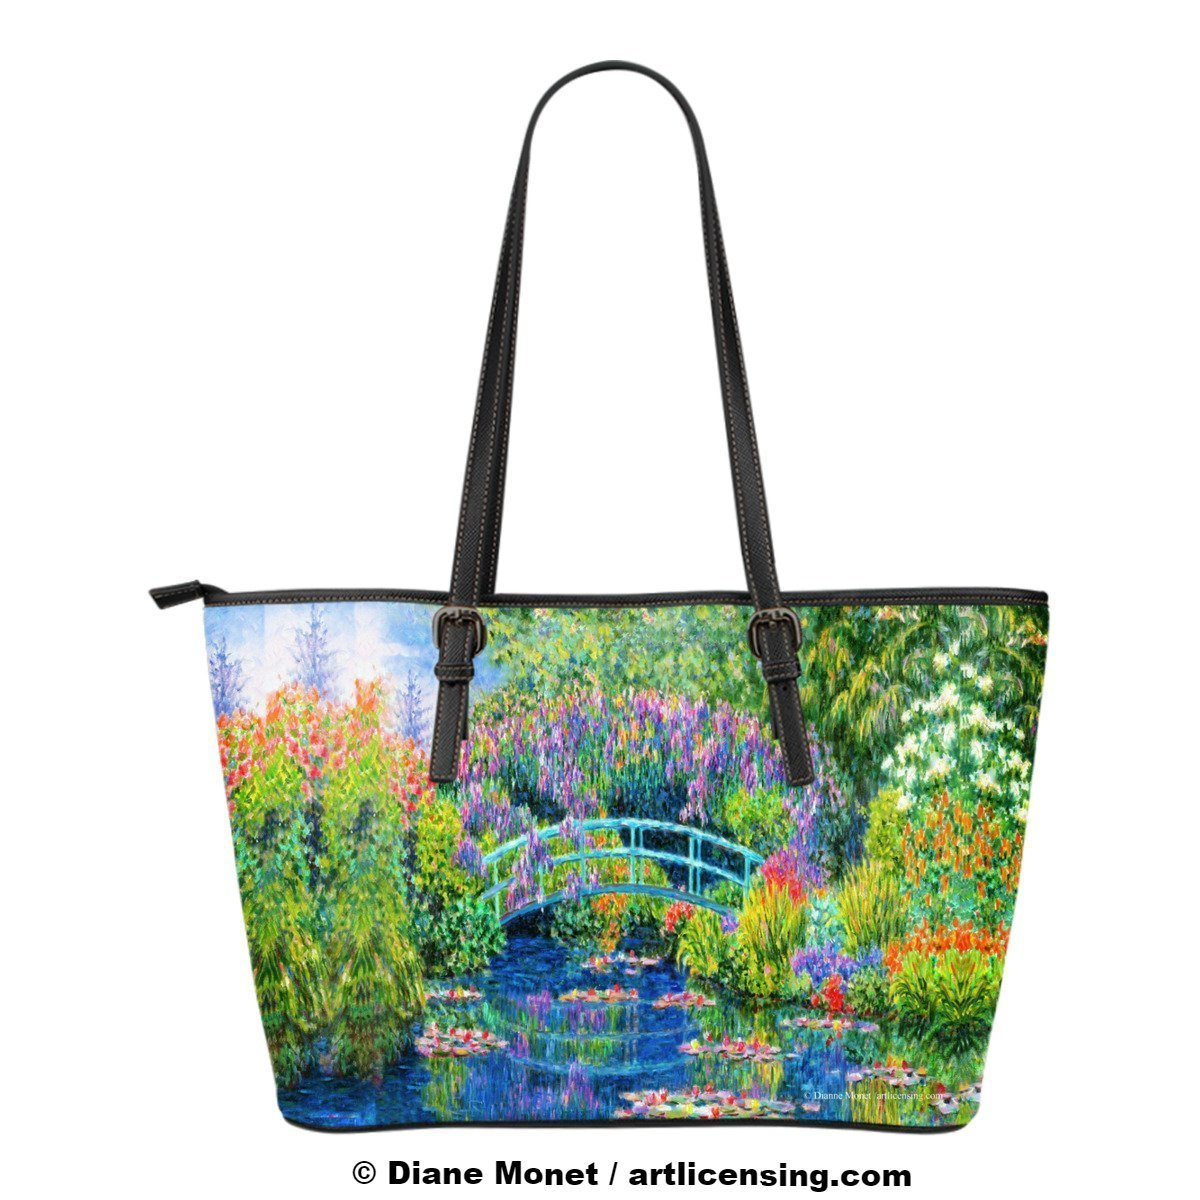 Diane Monet Calm Afternoon tote